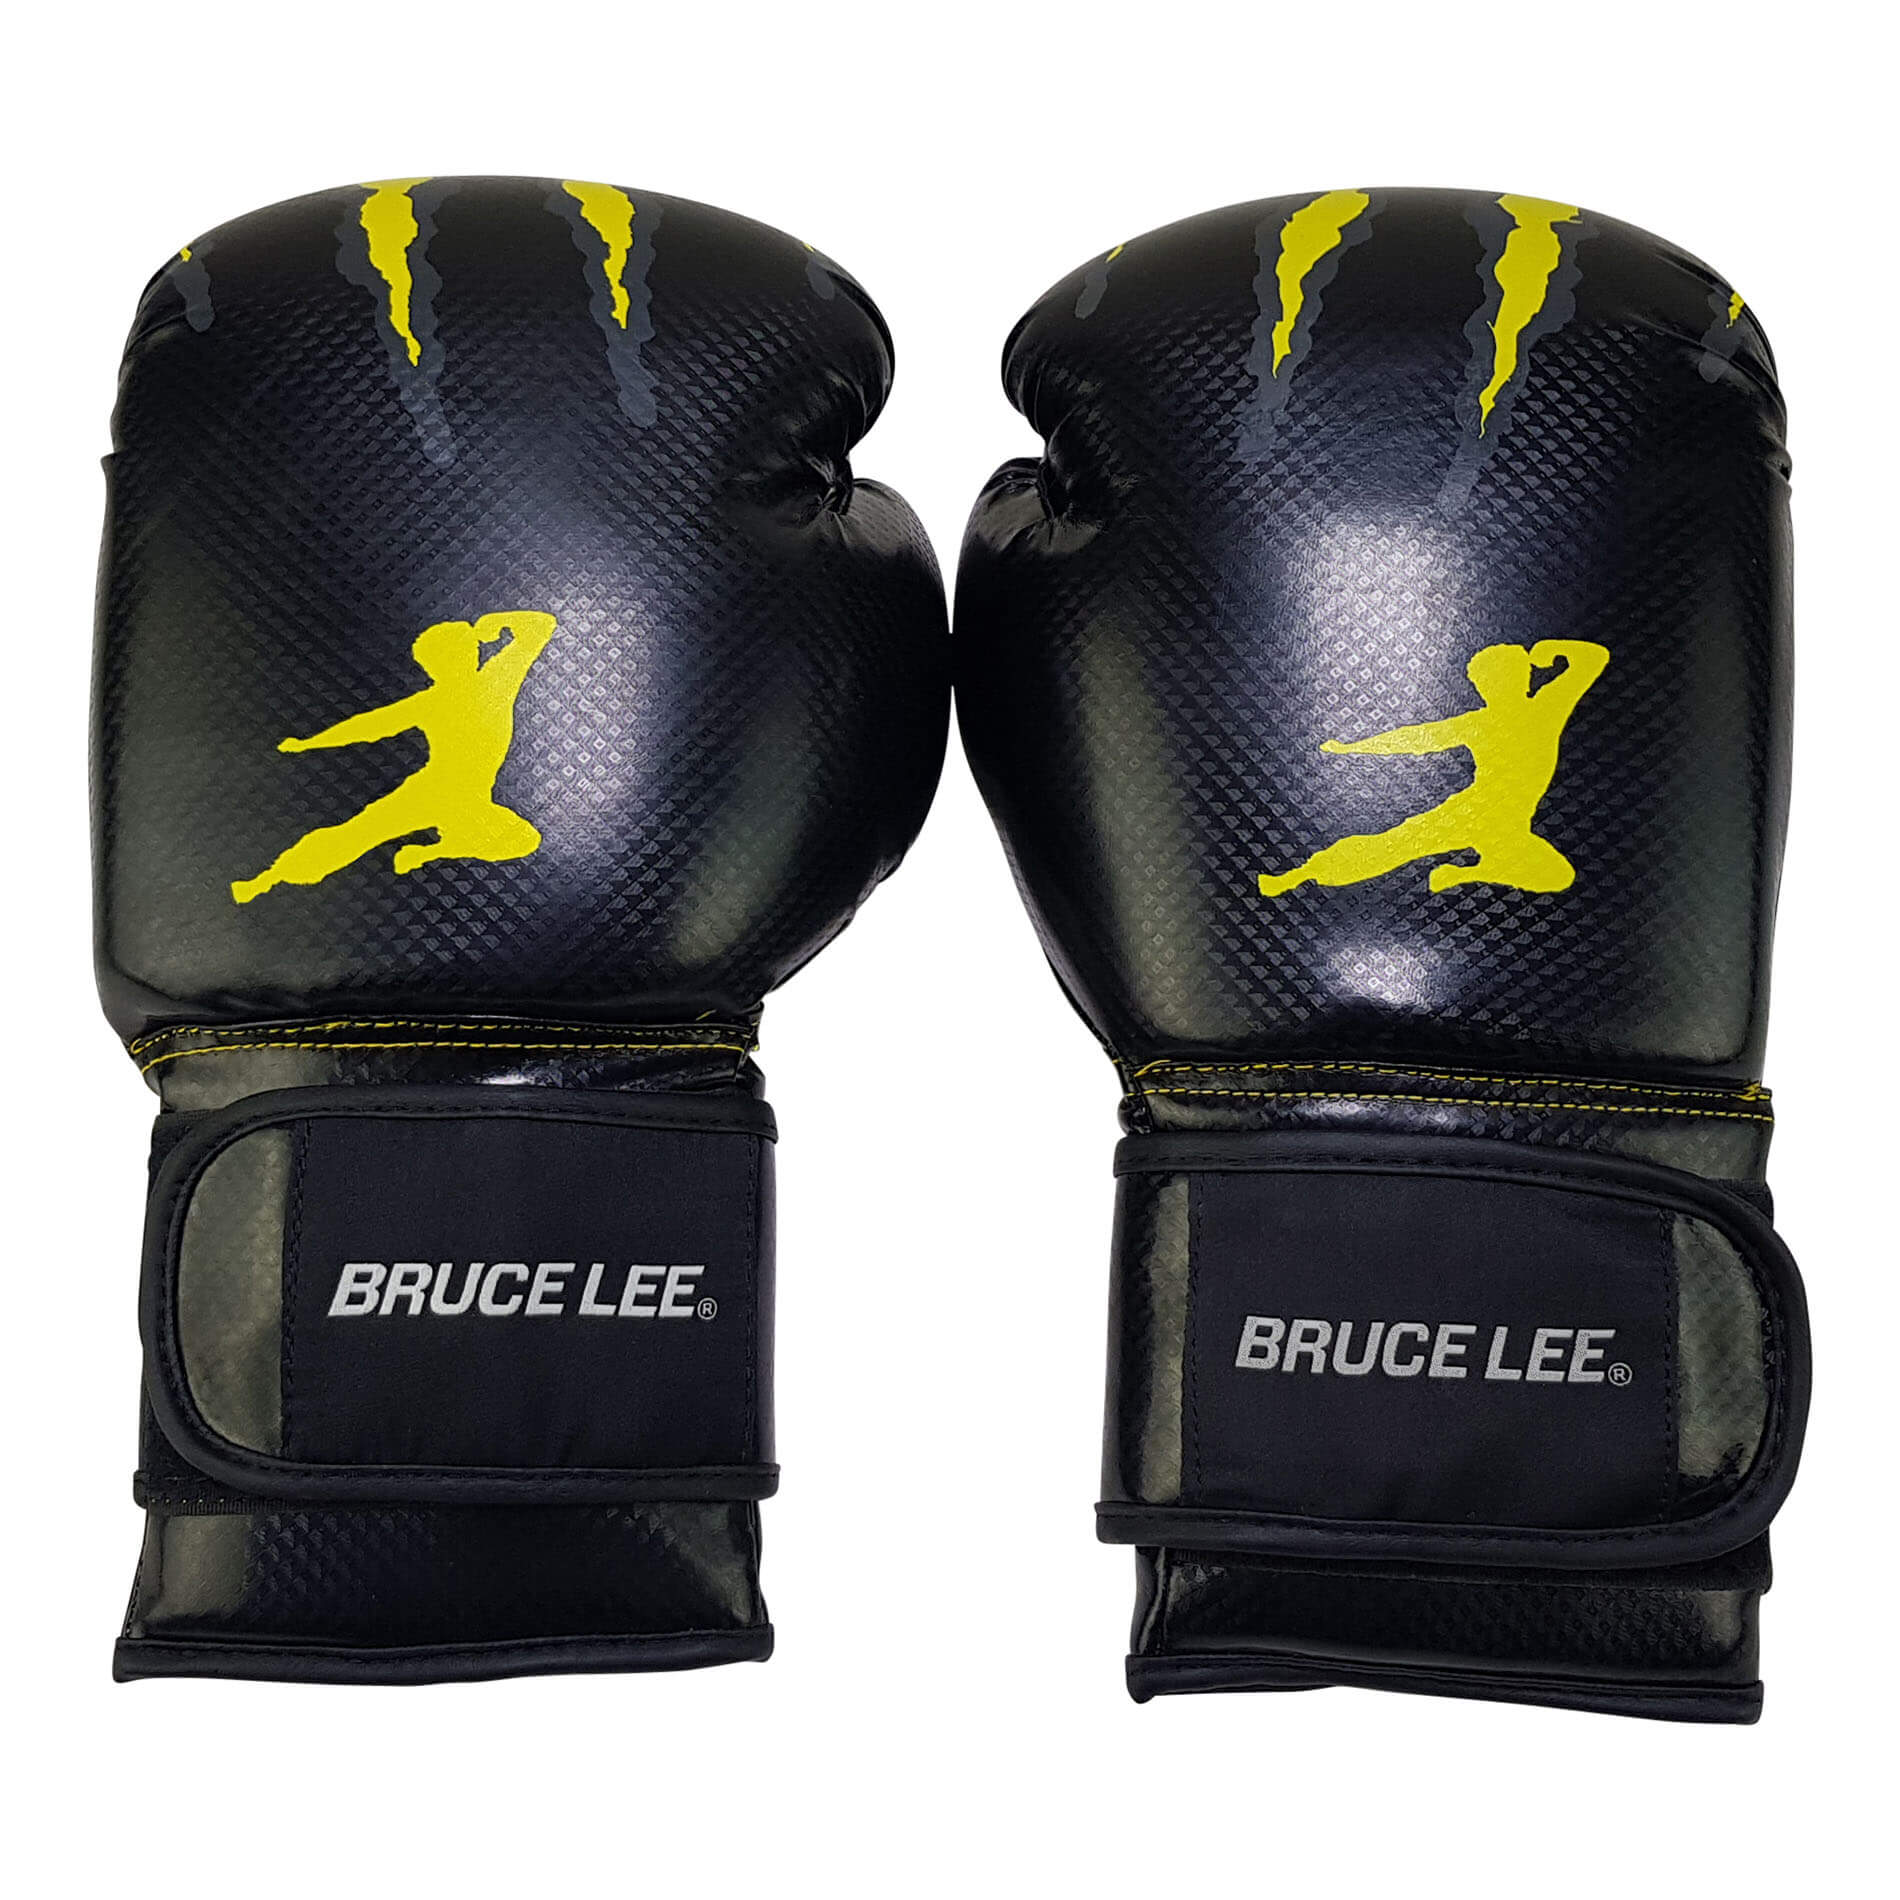 Signature Boxing Gloves